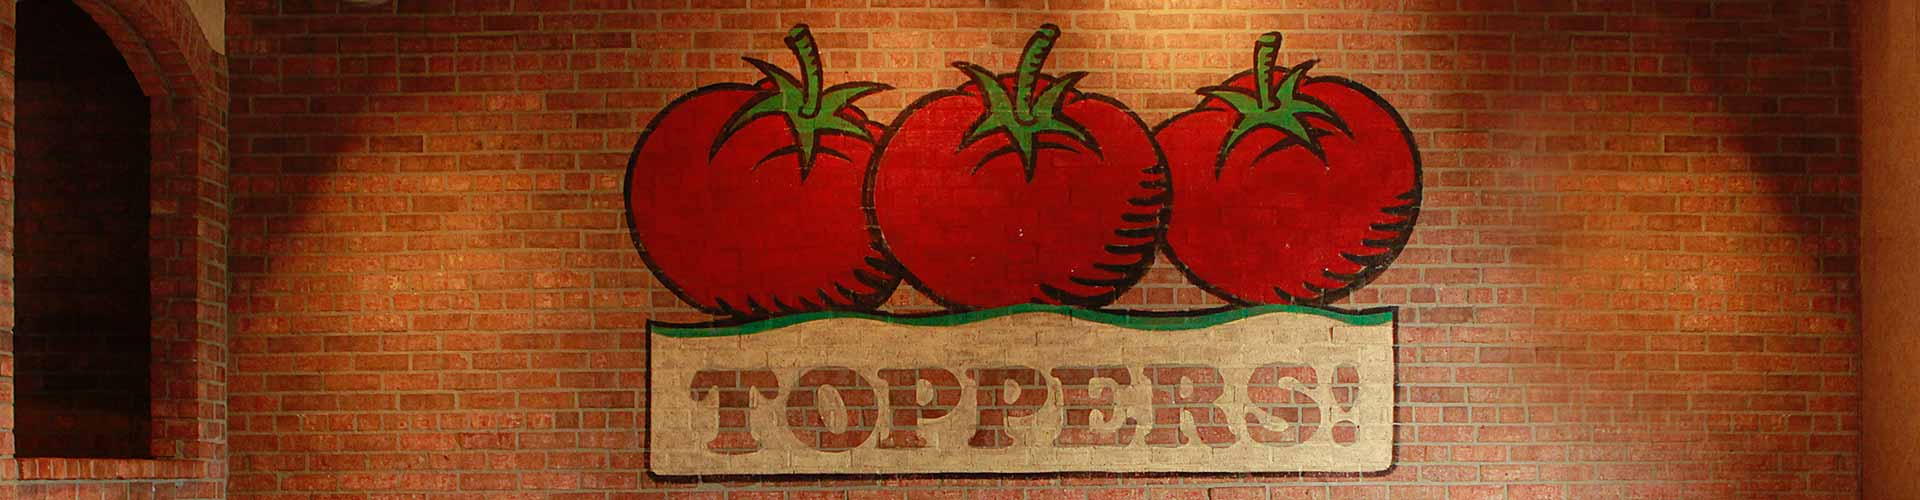 Topperspizza Header